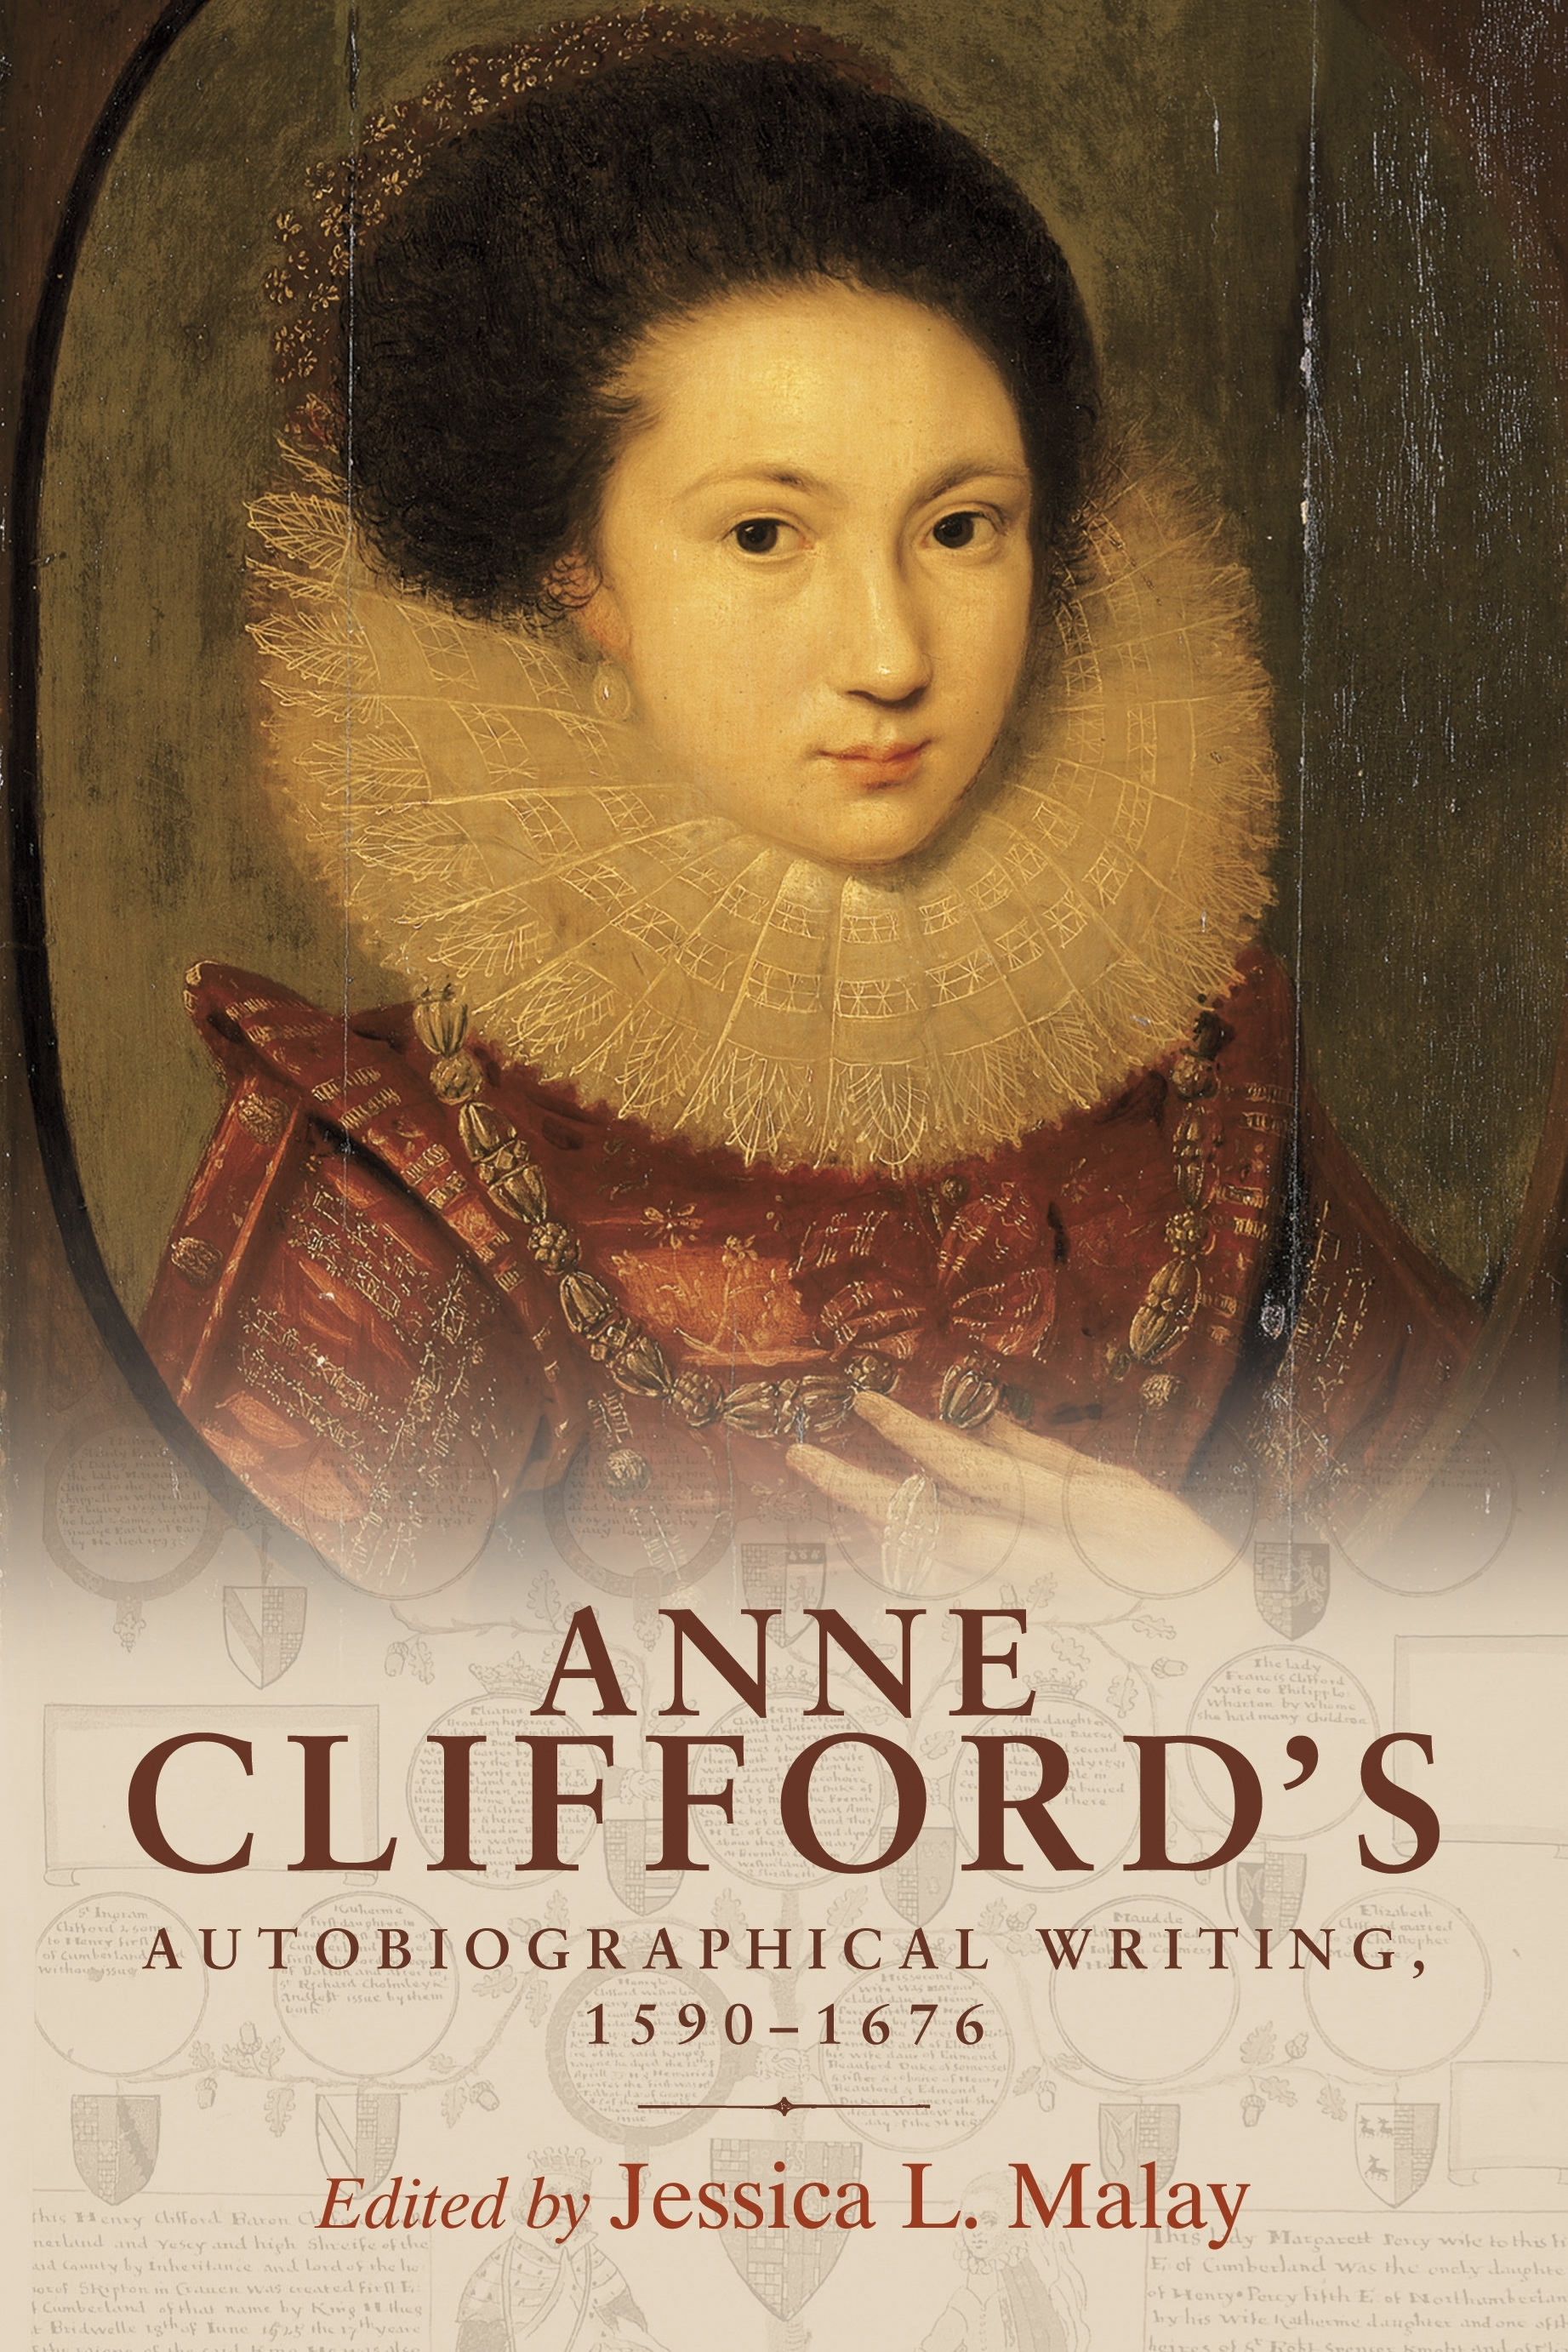 Anne Clifford's Autobiographical Writing, 1590-1676